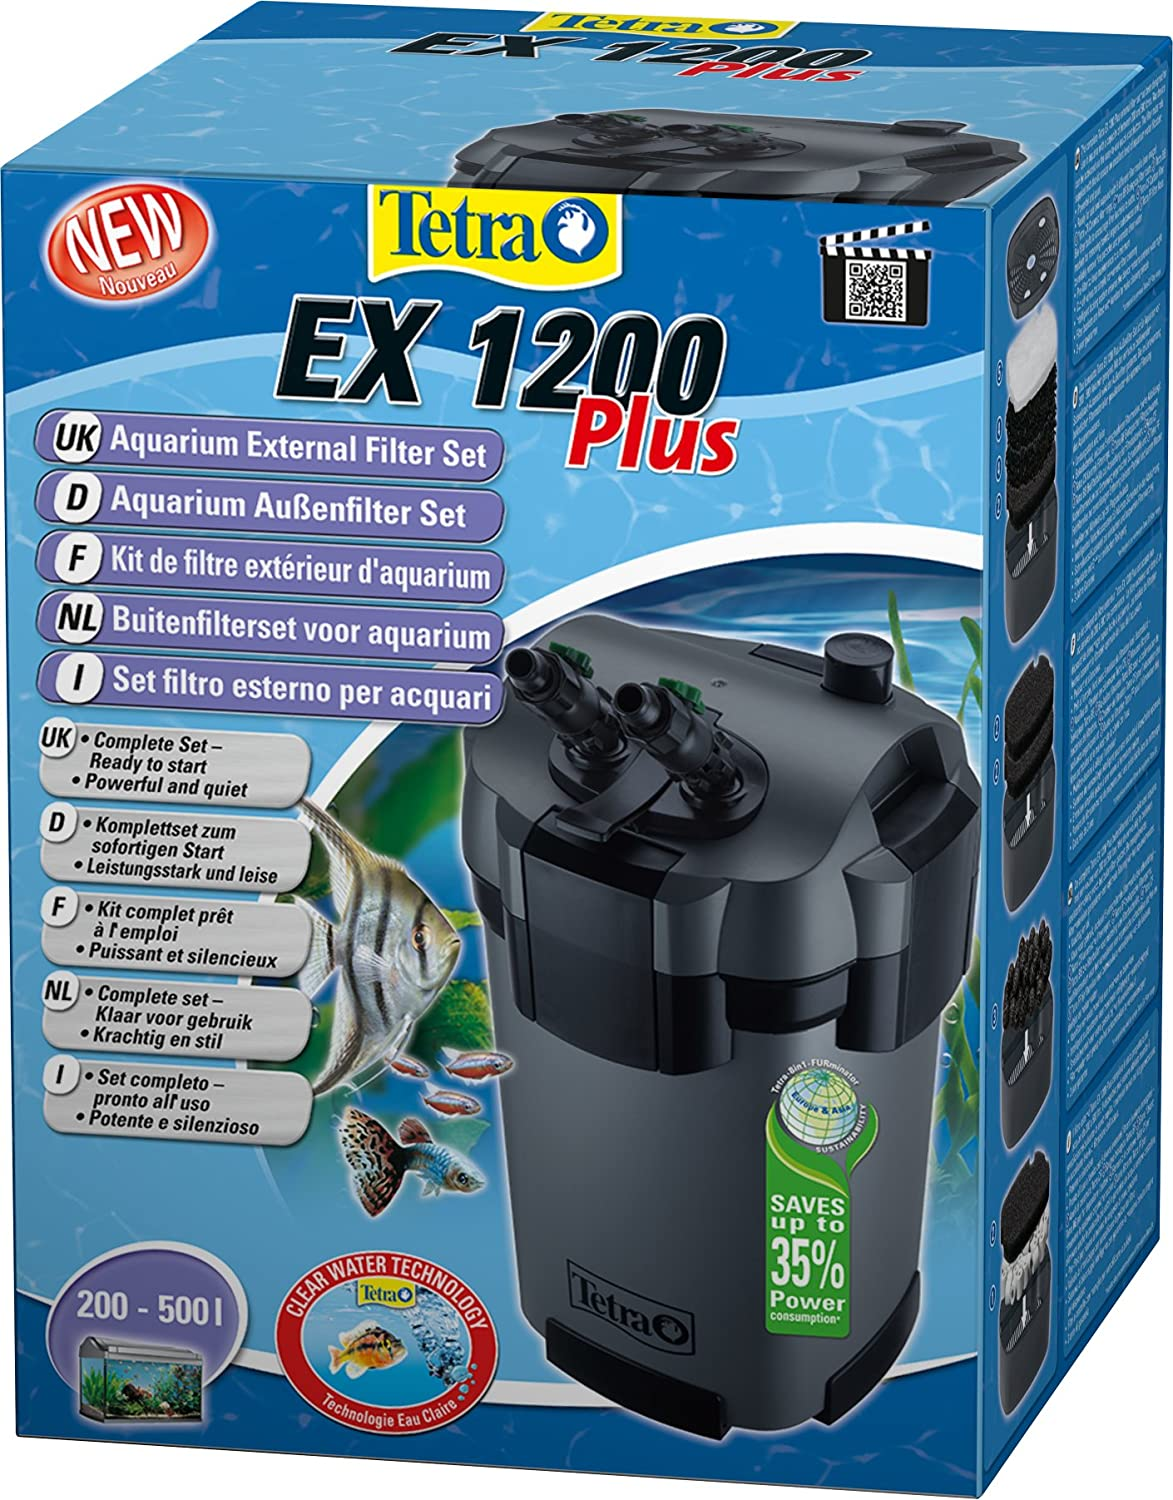 81 hGpfR69L._SL1500_ tetra tec ex 700 external filter amazon co uk pet supplies  at edmiracle.co